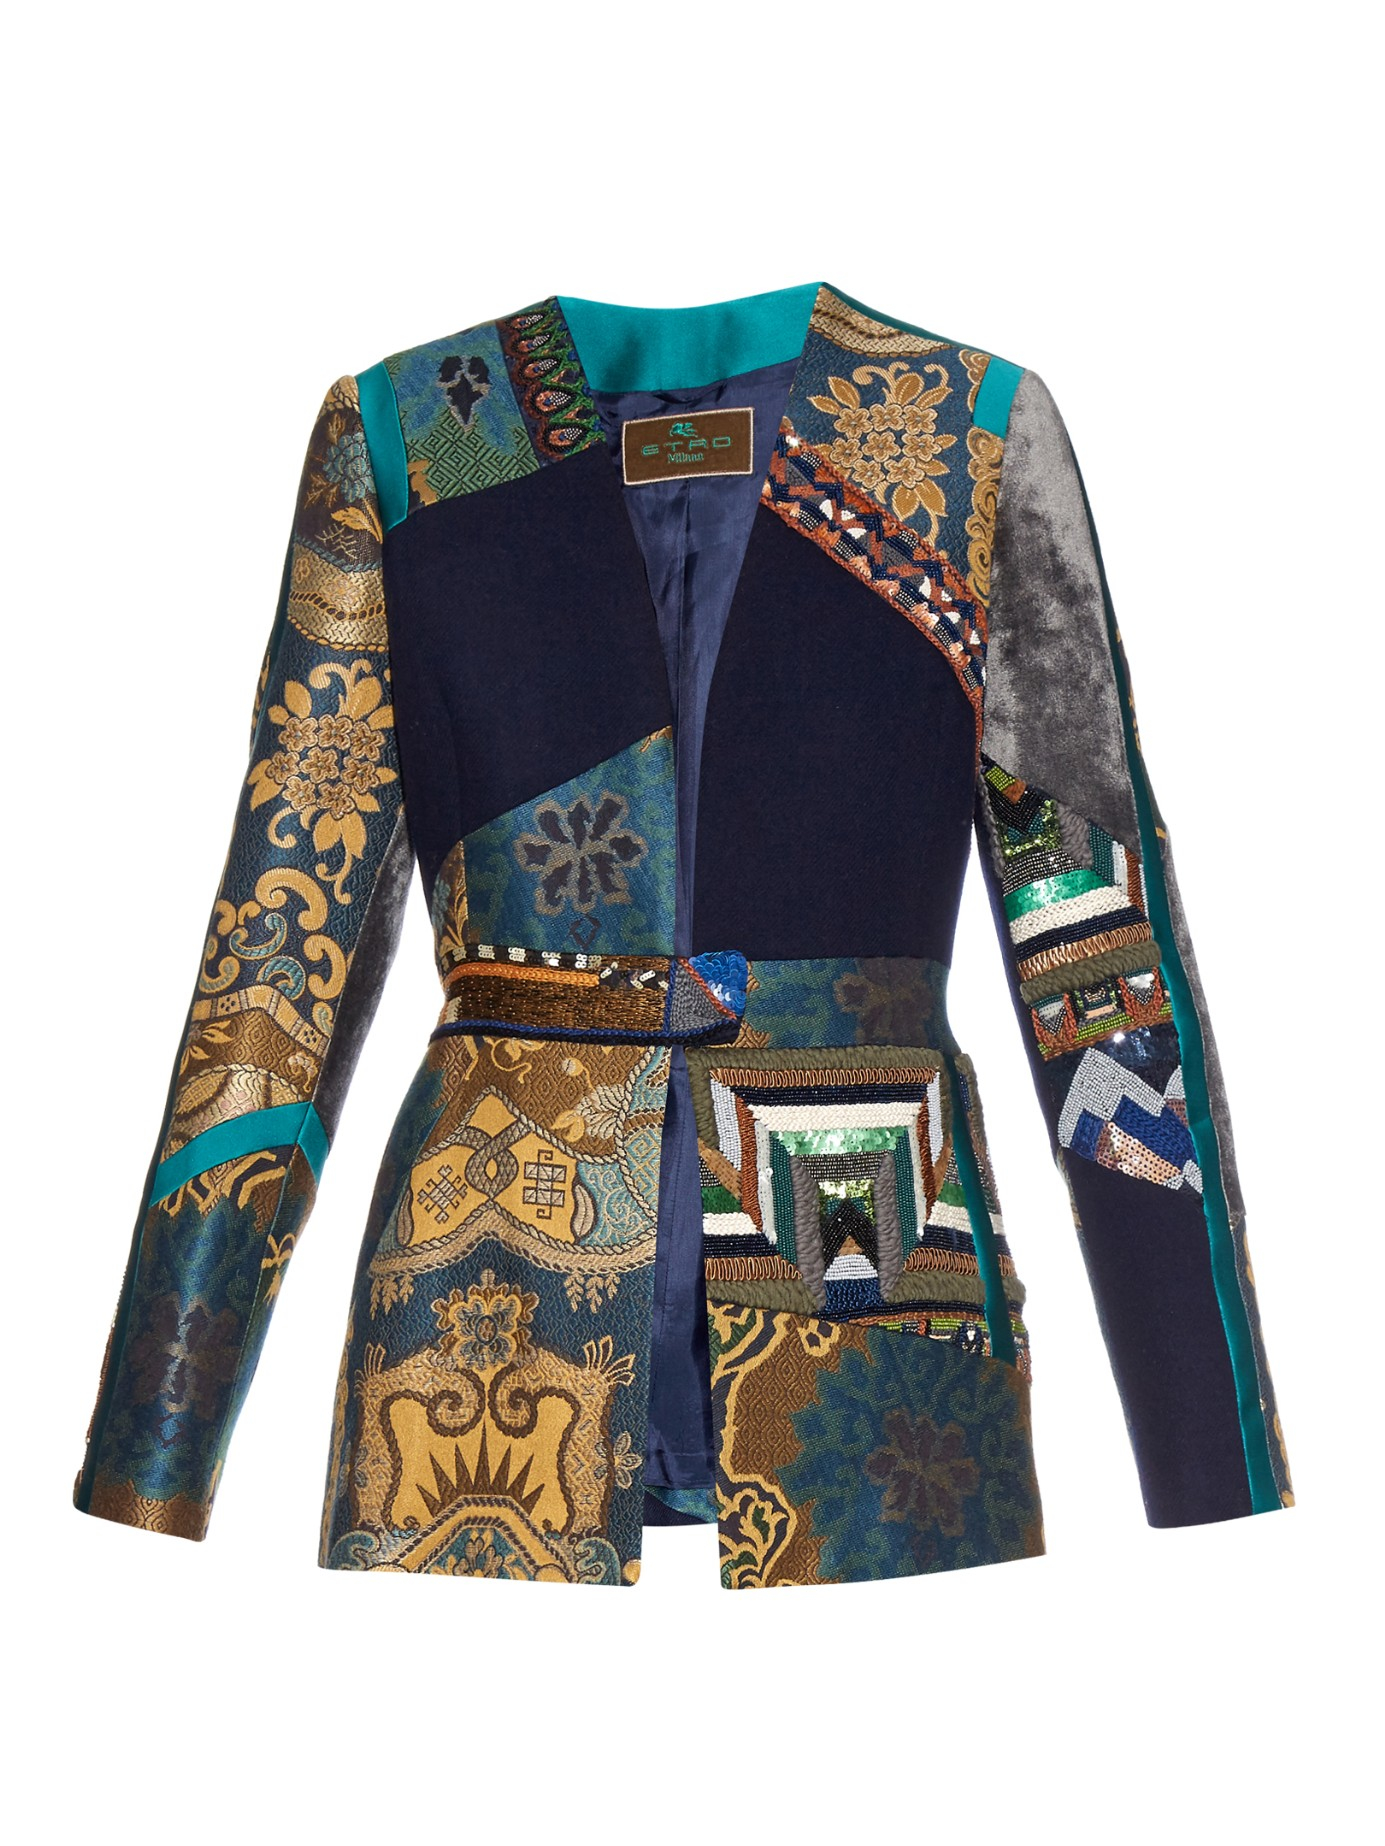 Etro Patchwork Embroidered Jacquard And Velvet Jacket In